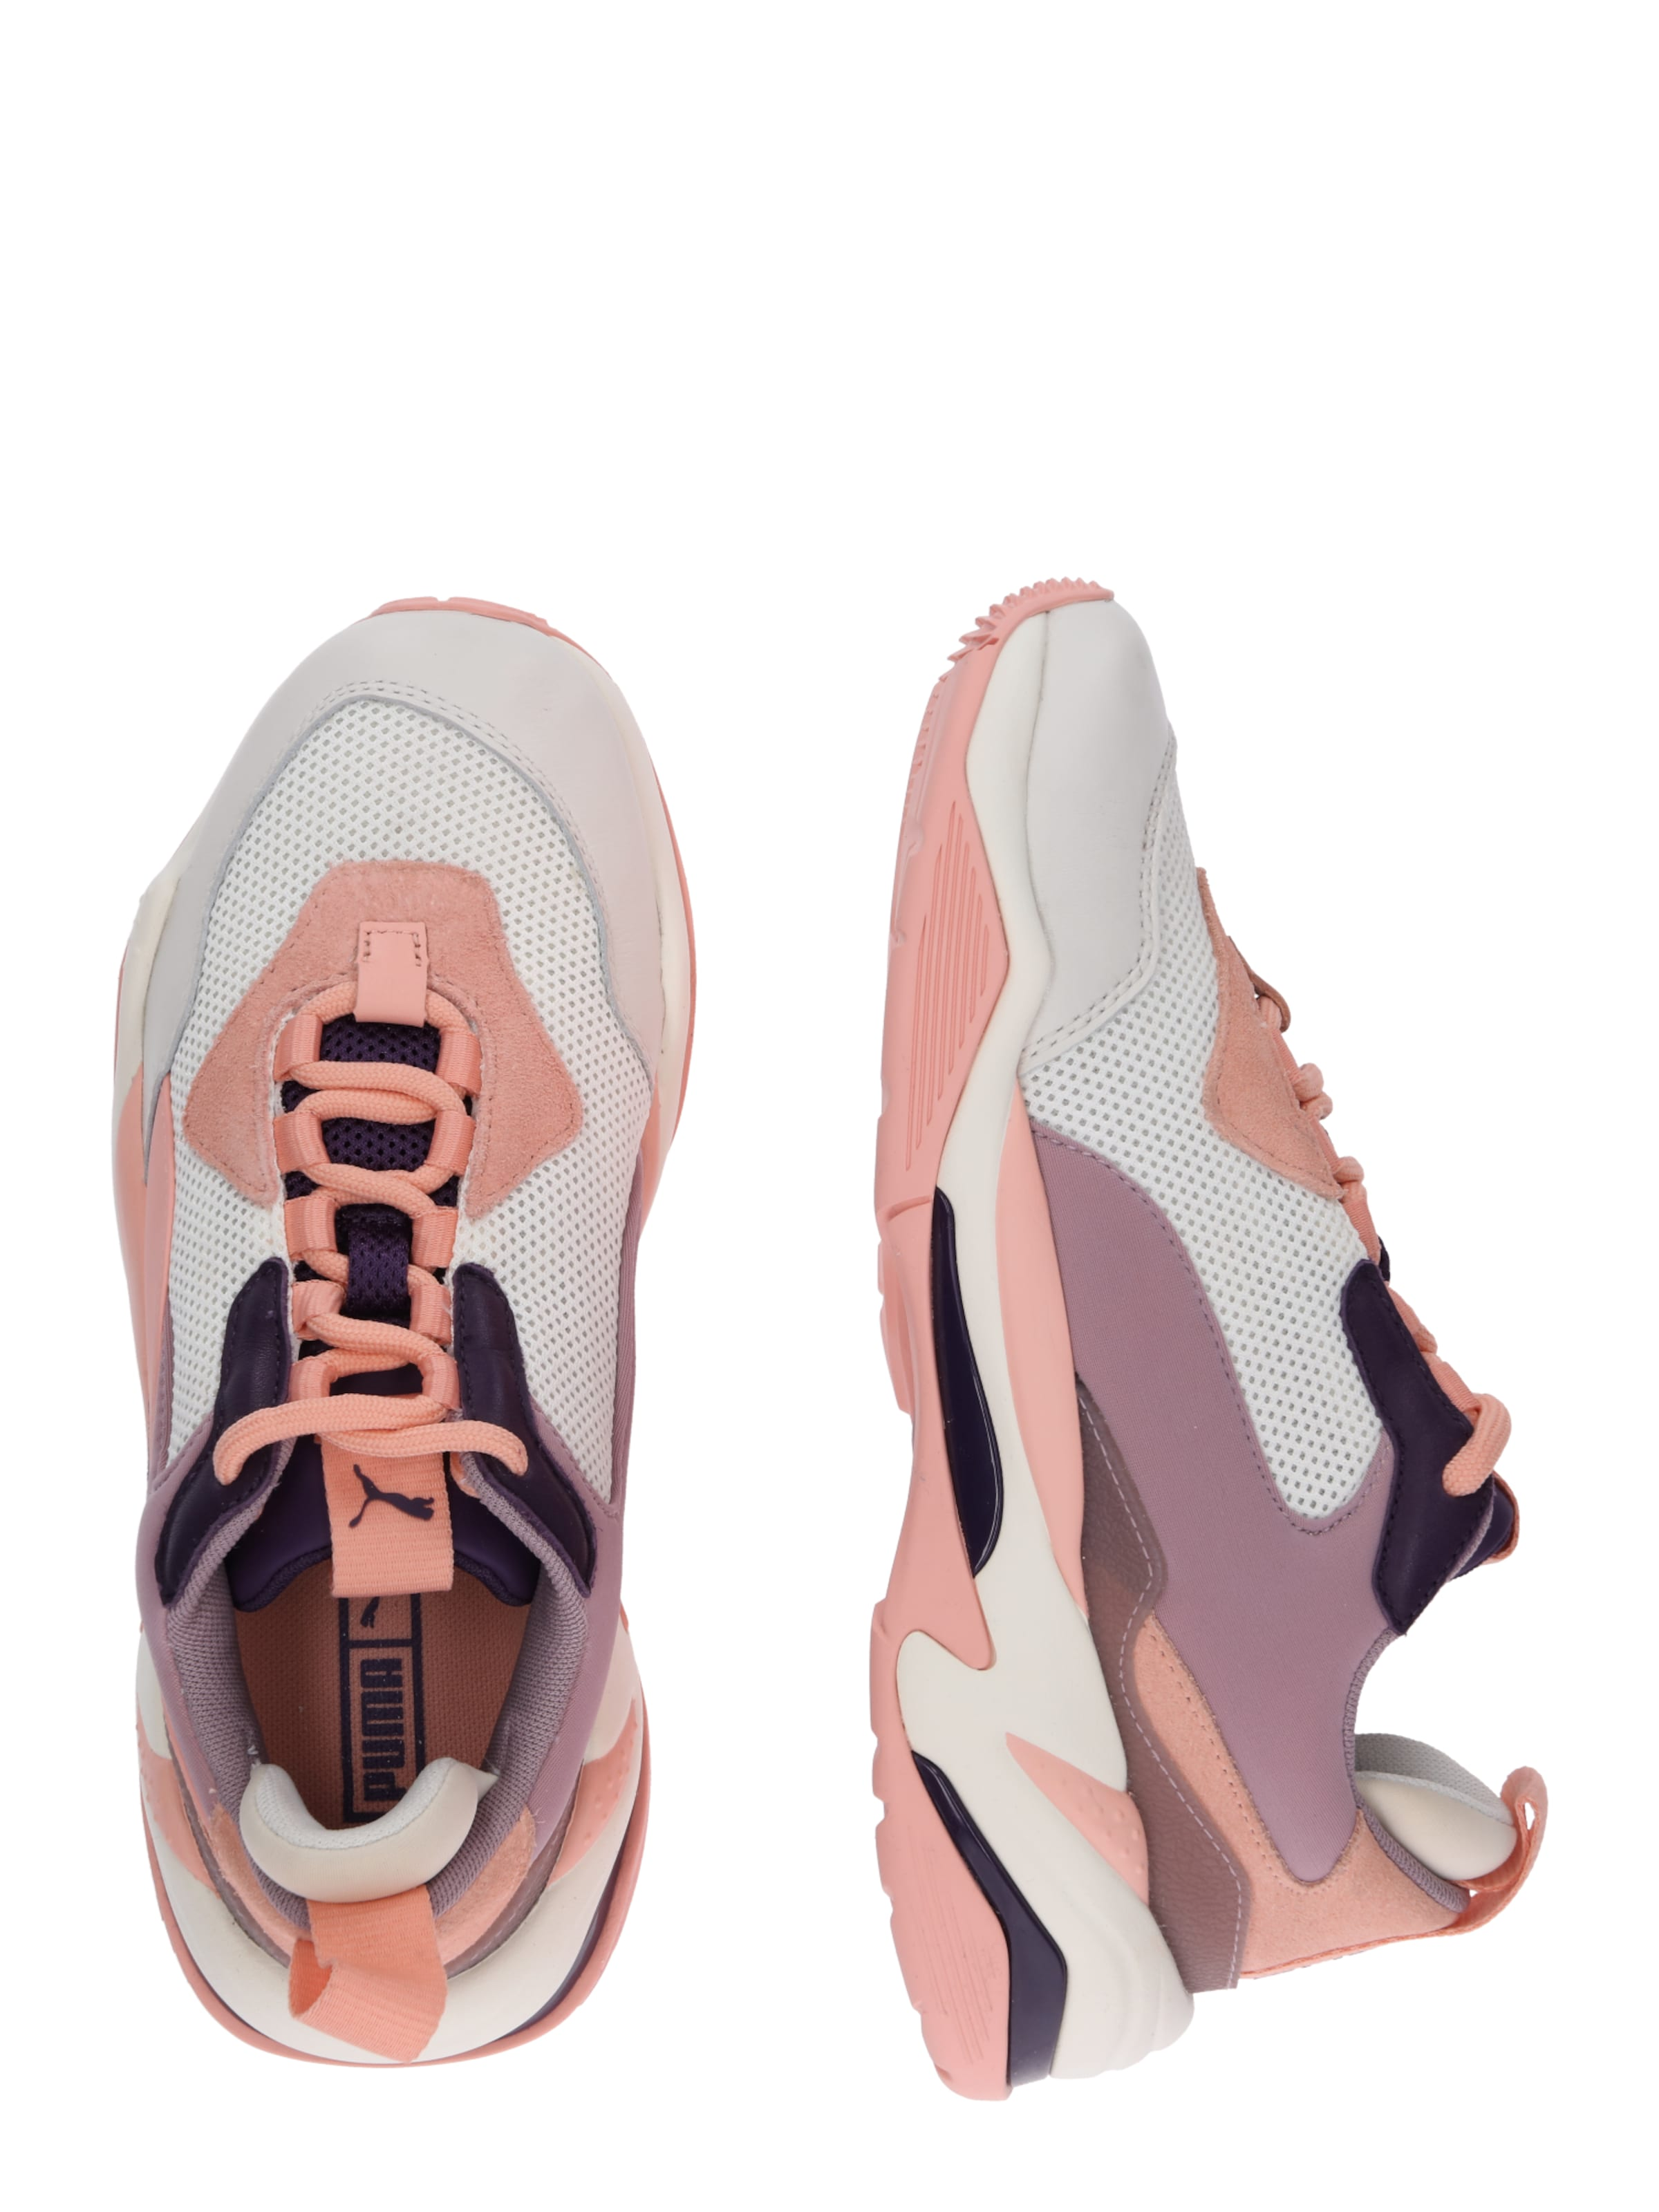 En 1' Puma Basses 'thunder Baskets Fashion AuberginePêche Rose Blanc 354RjLqcAS